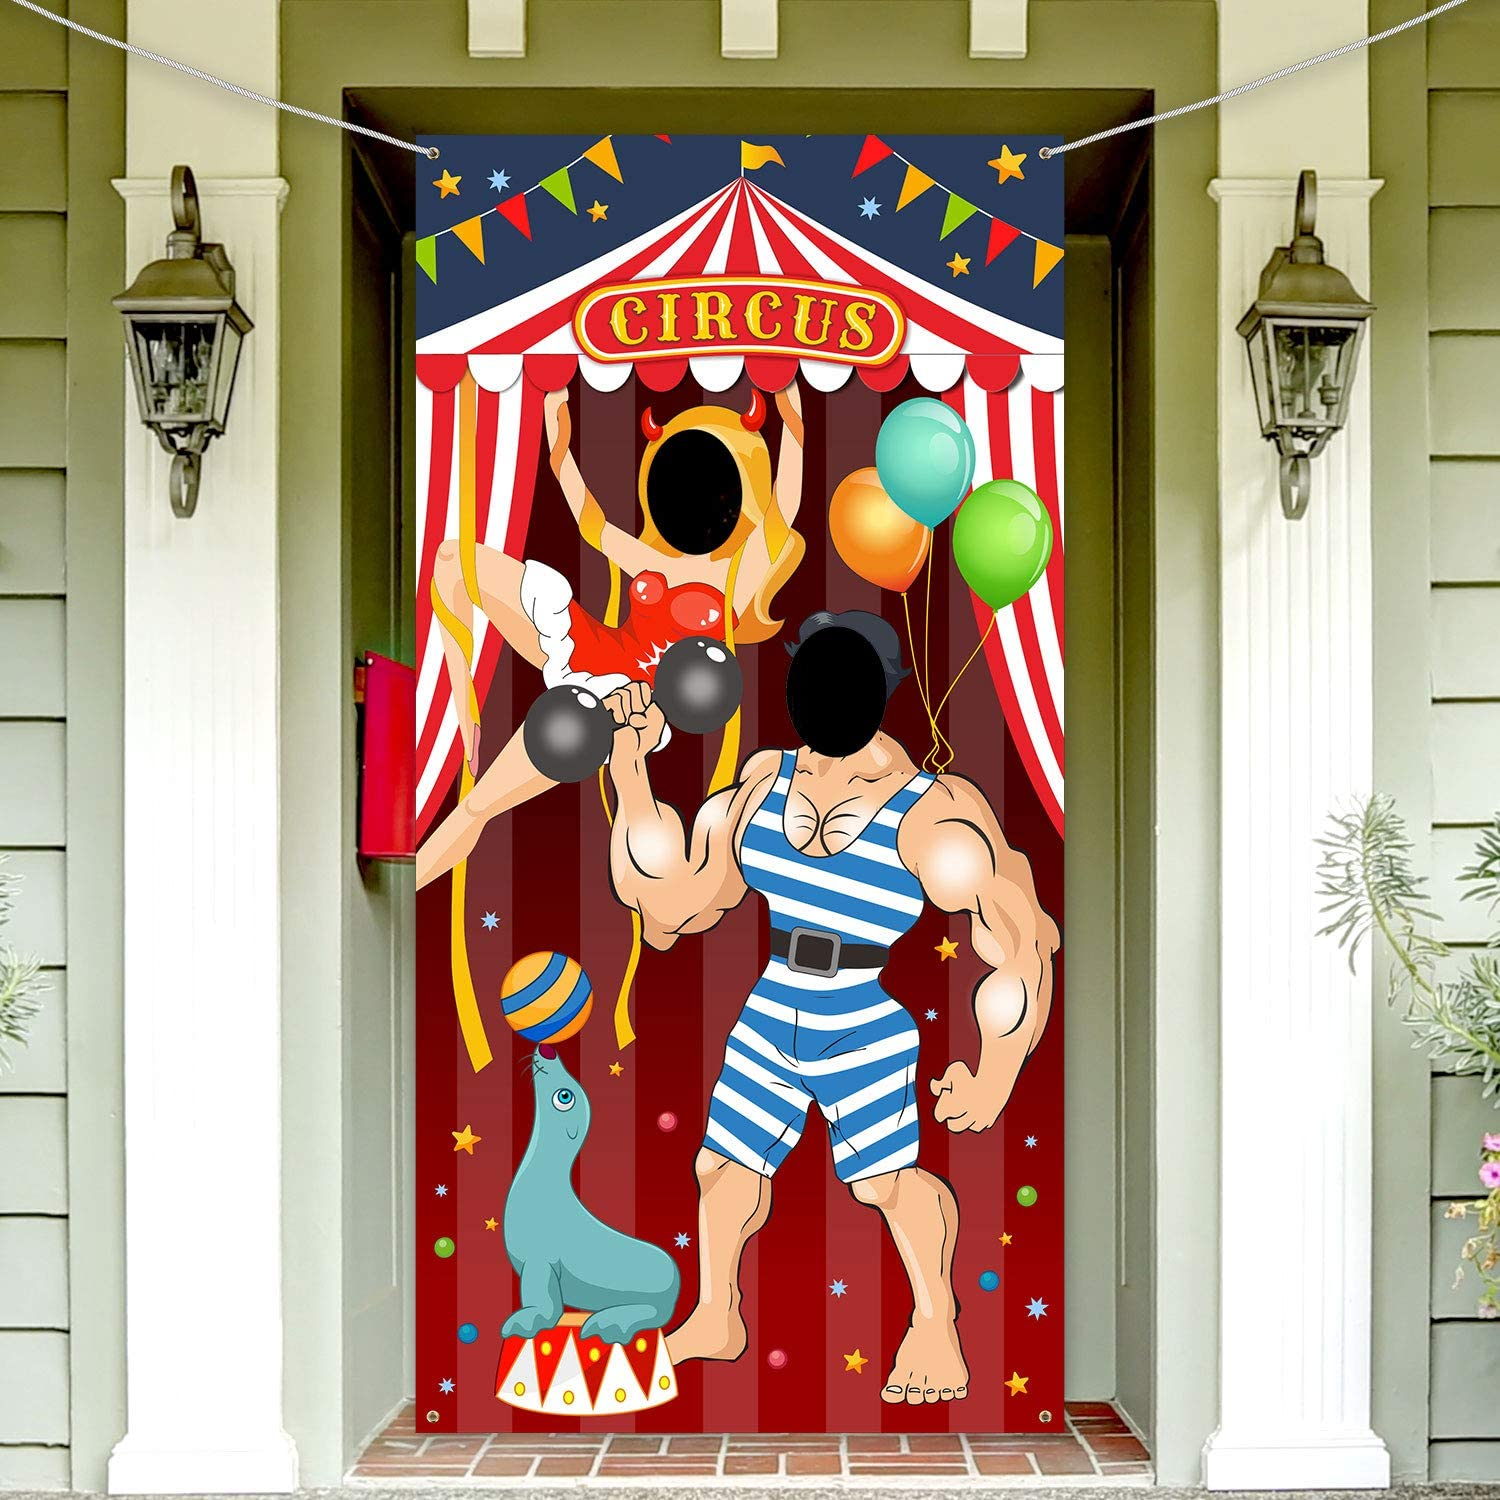 Carnival Circus Party Decoration Carnival Photo Door Banner Backdrop Props, Large Fabric Photo Door Banner for Carnival Circus Party Decor Carnival Game Supplies (Hercules)